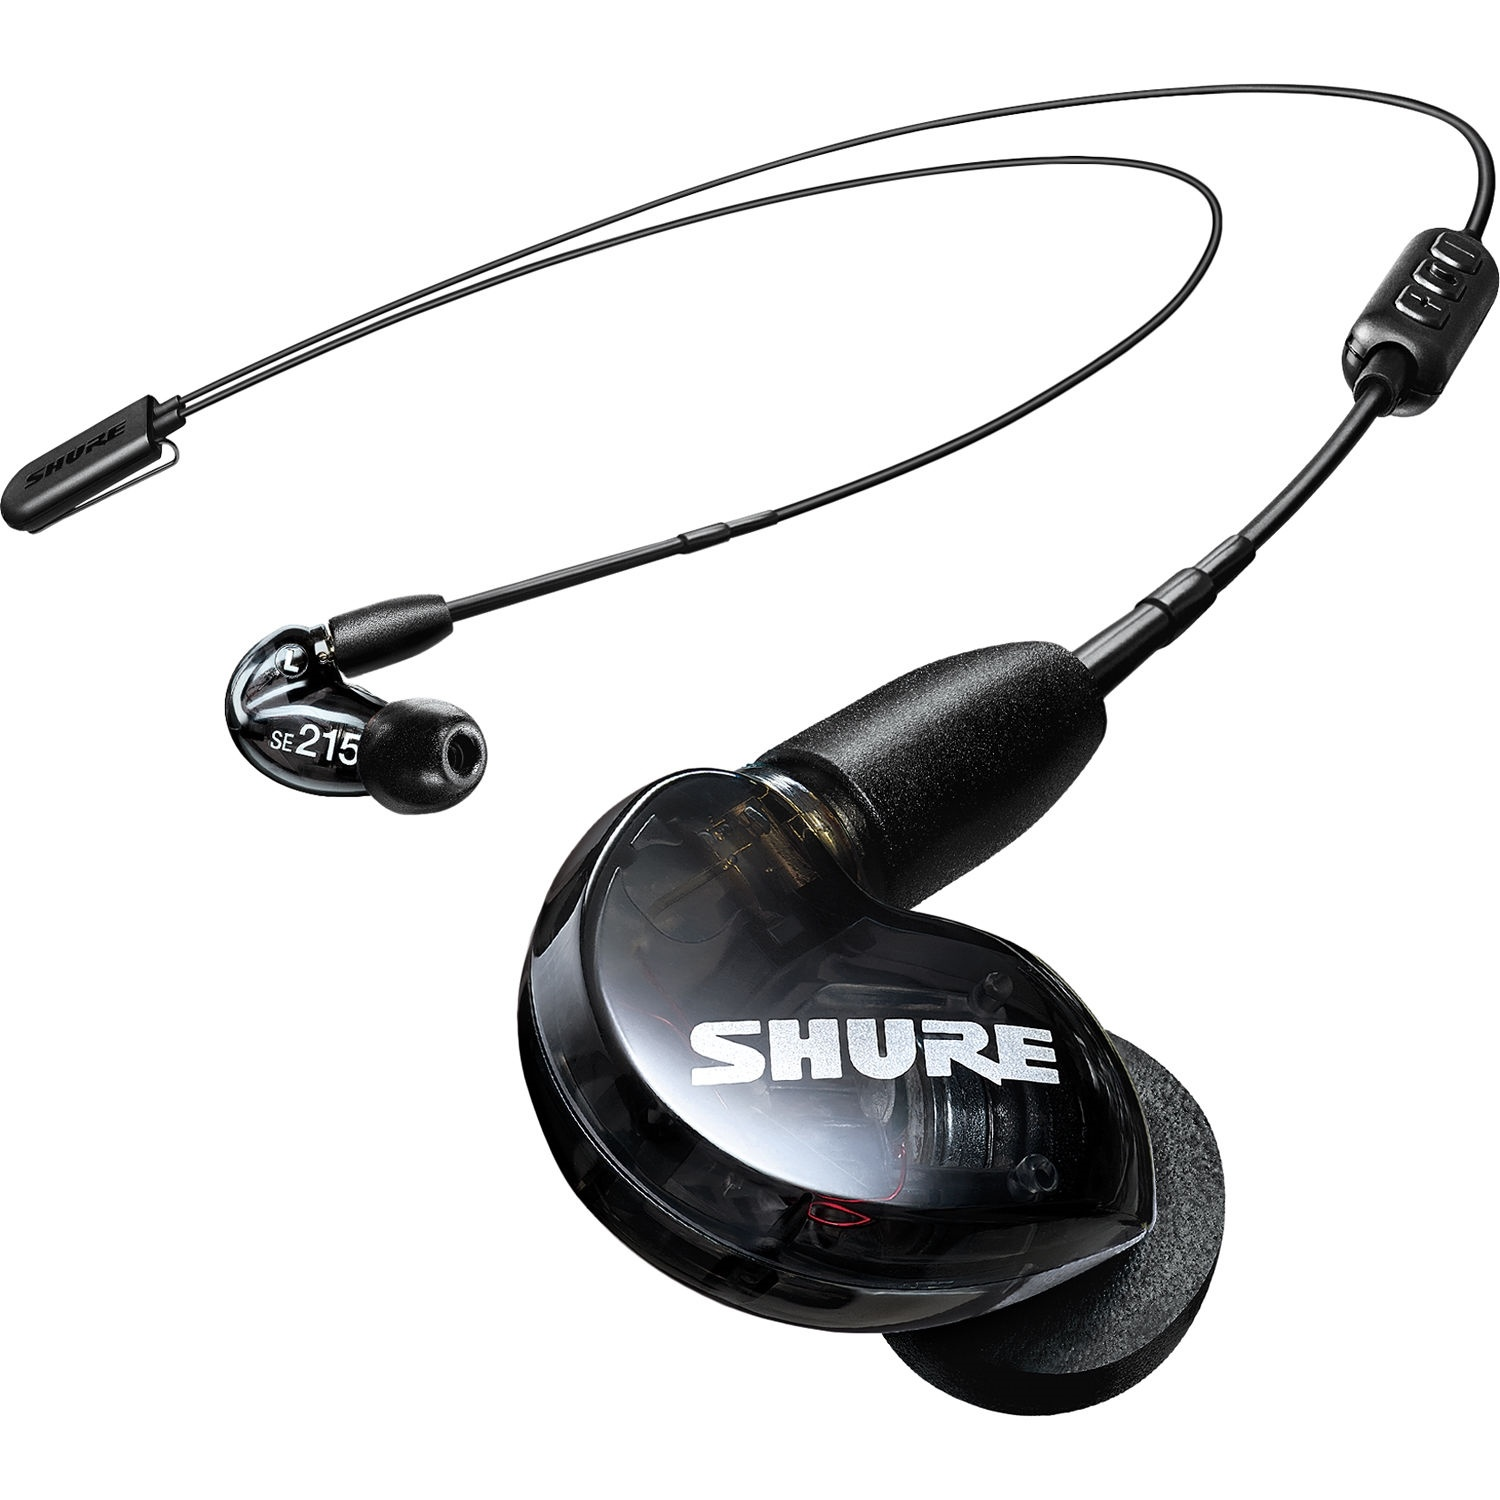 Shure SE215 Sound-Isolating Earphones with RMCE-BT2 Bluetooth Cable (Black)